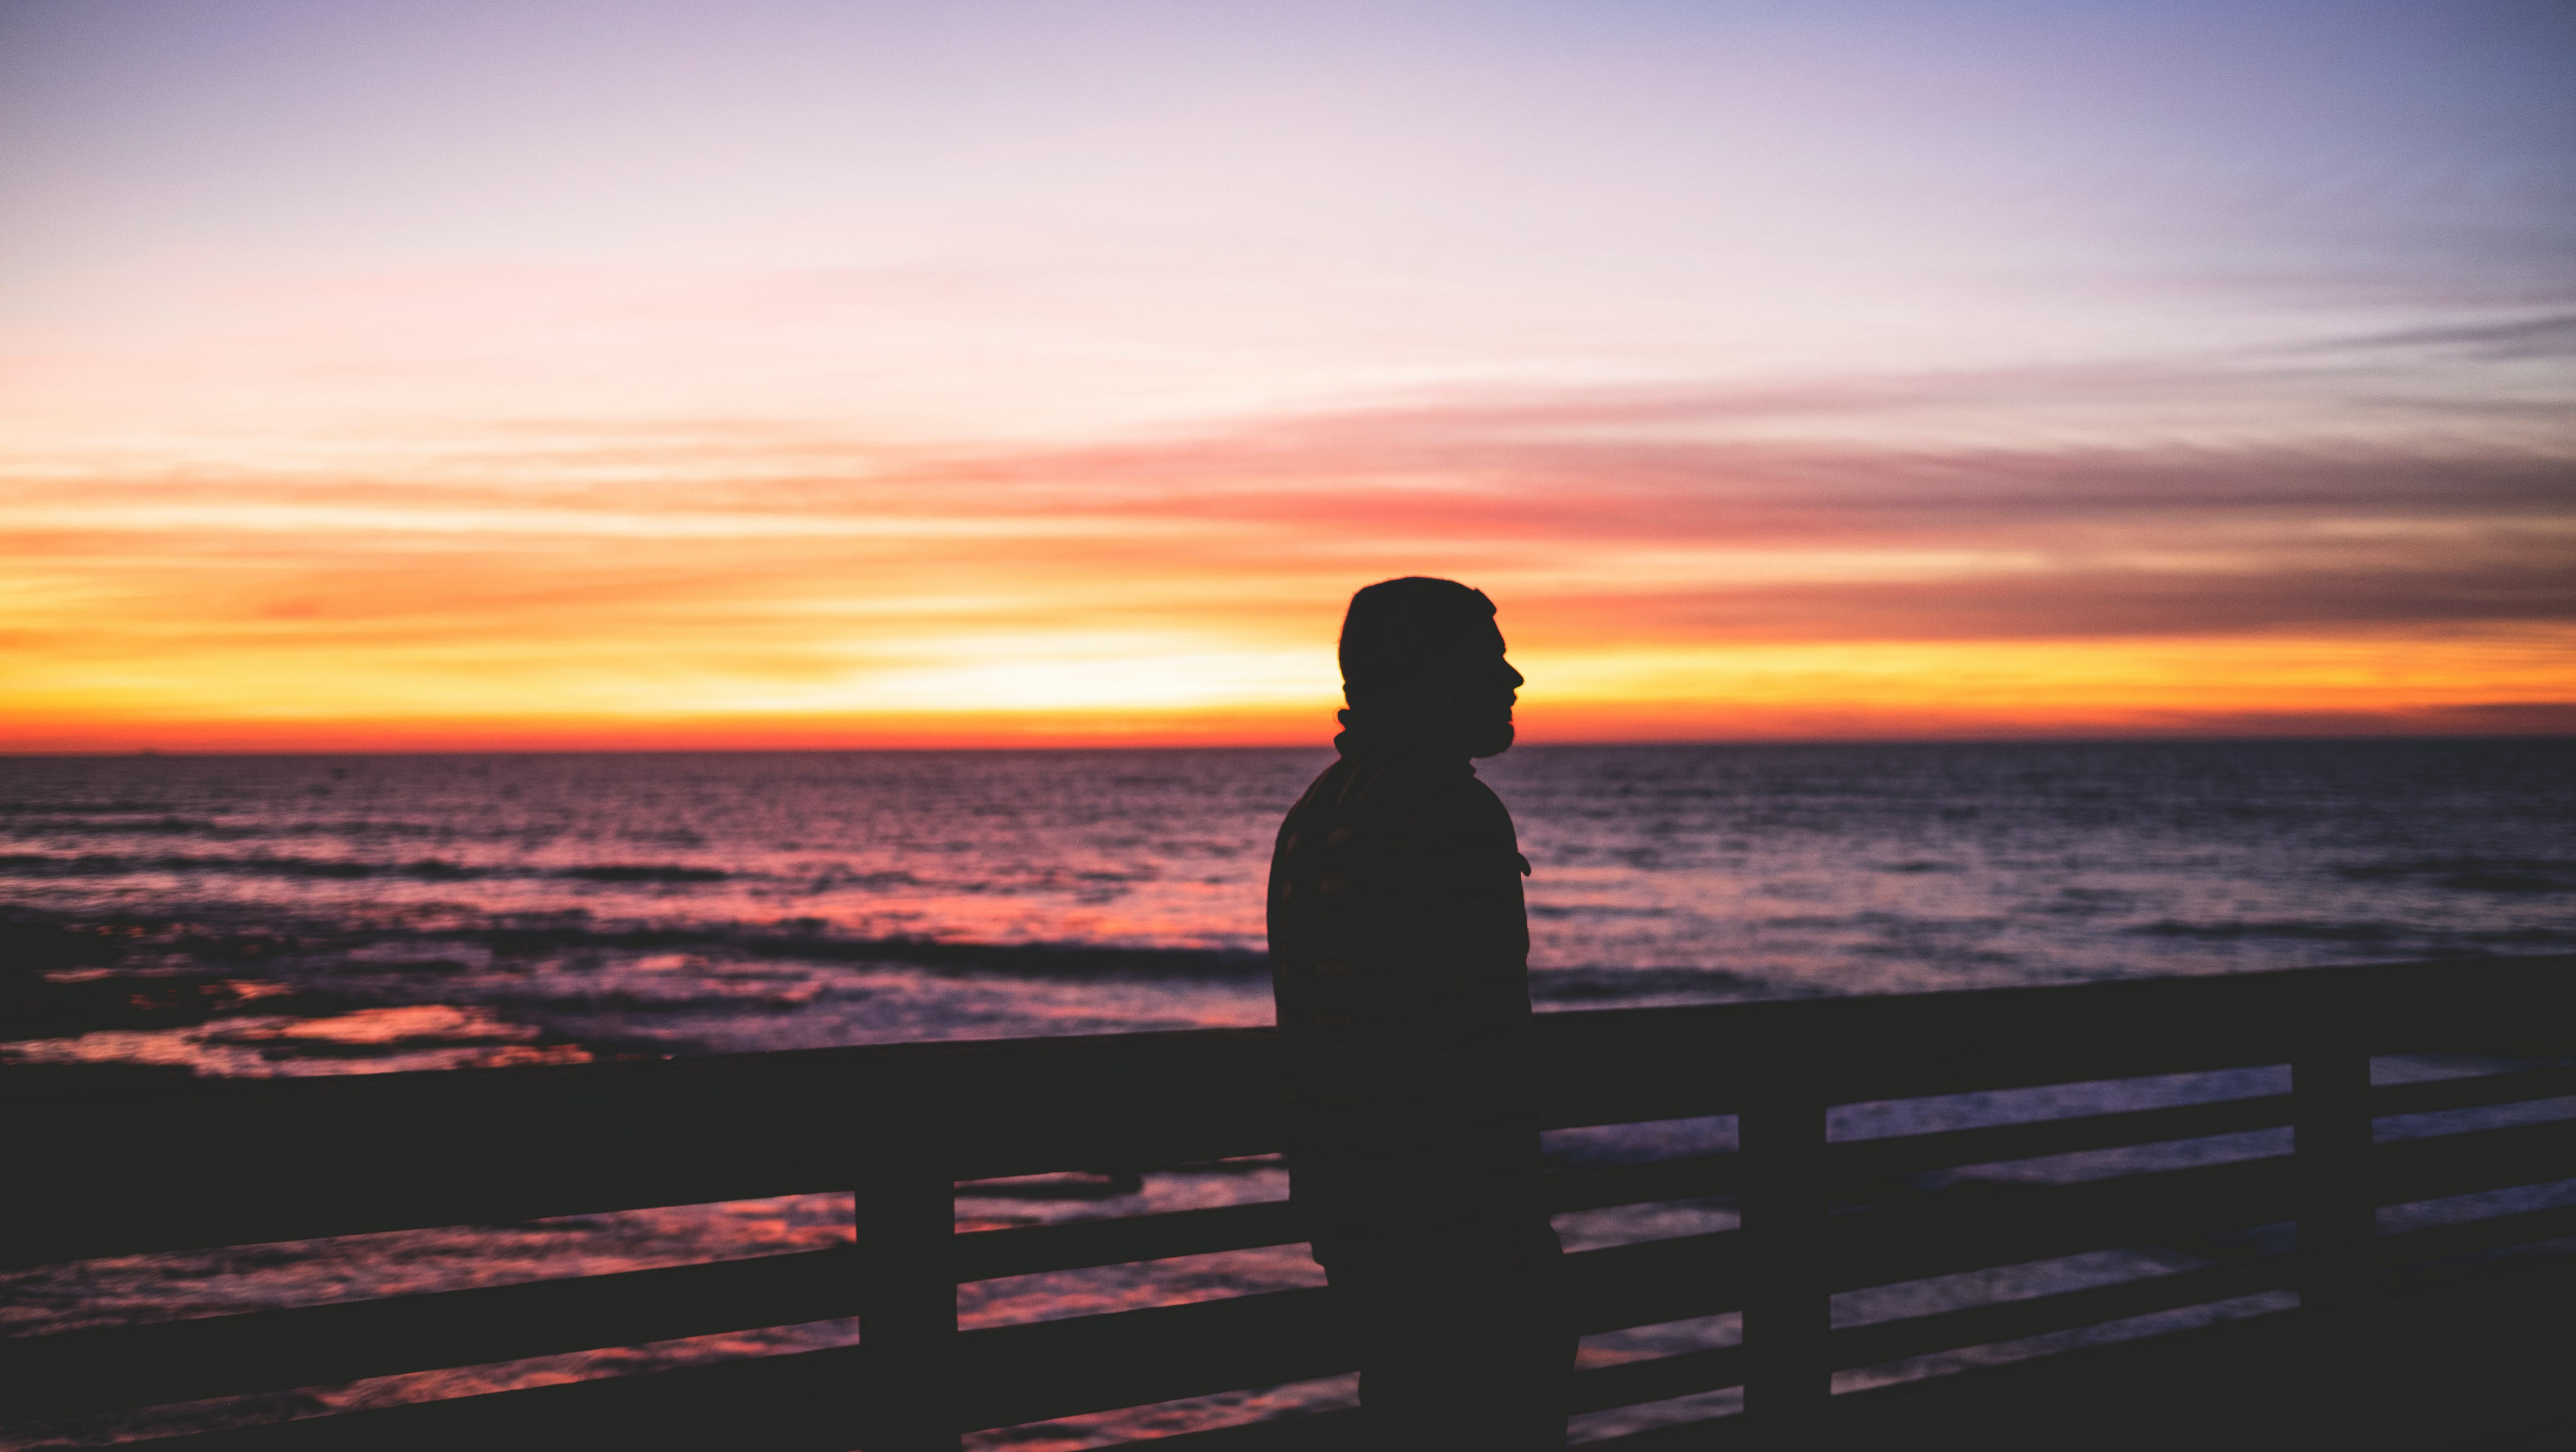 Silhouette of a man looking into the distance, while leaning against a fence by the ocean at dusk